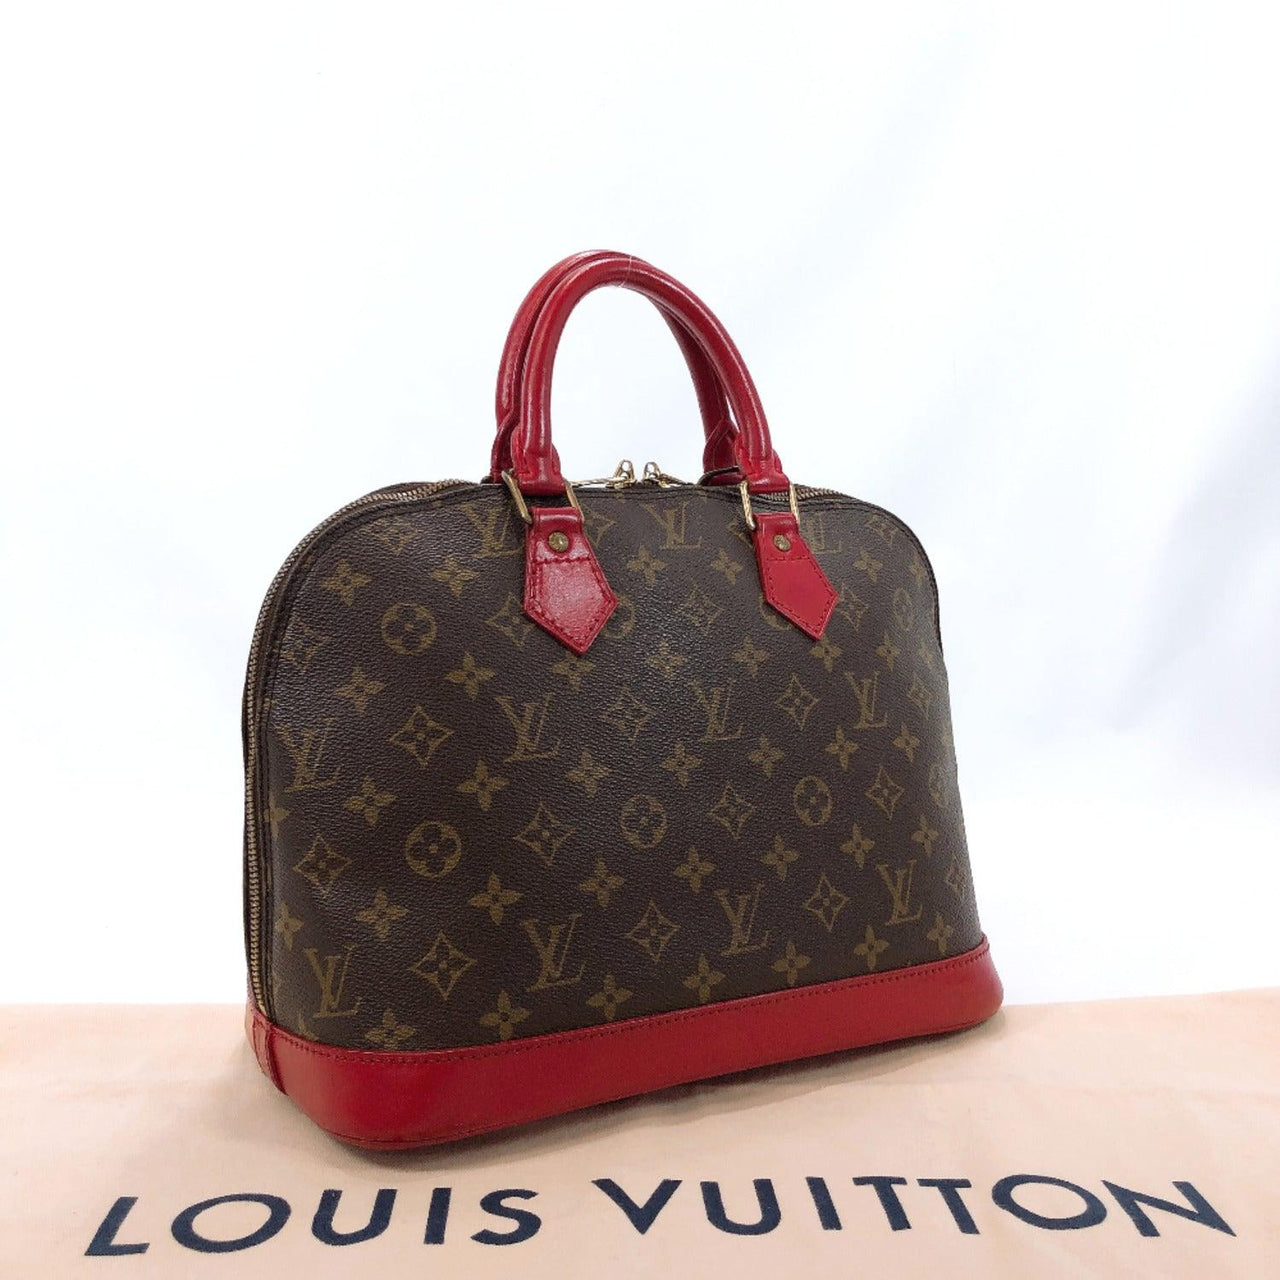 LOUIS VUITTON Handbag M51130 Alma PM vintage Monogram Brown Red Customized Used